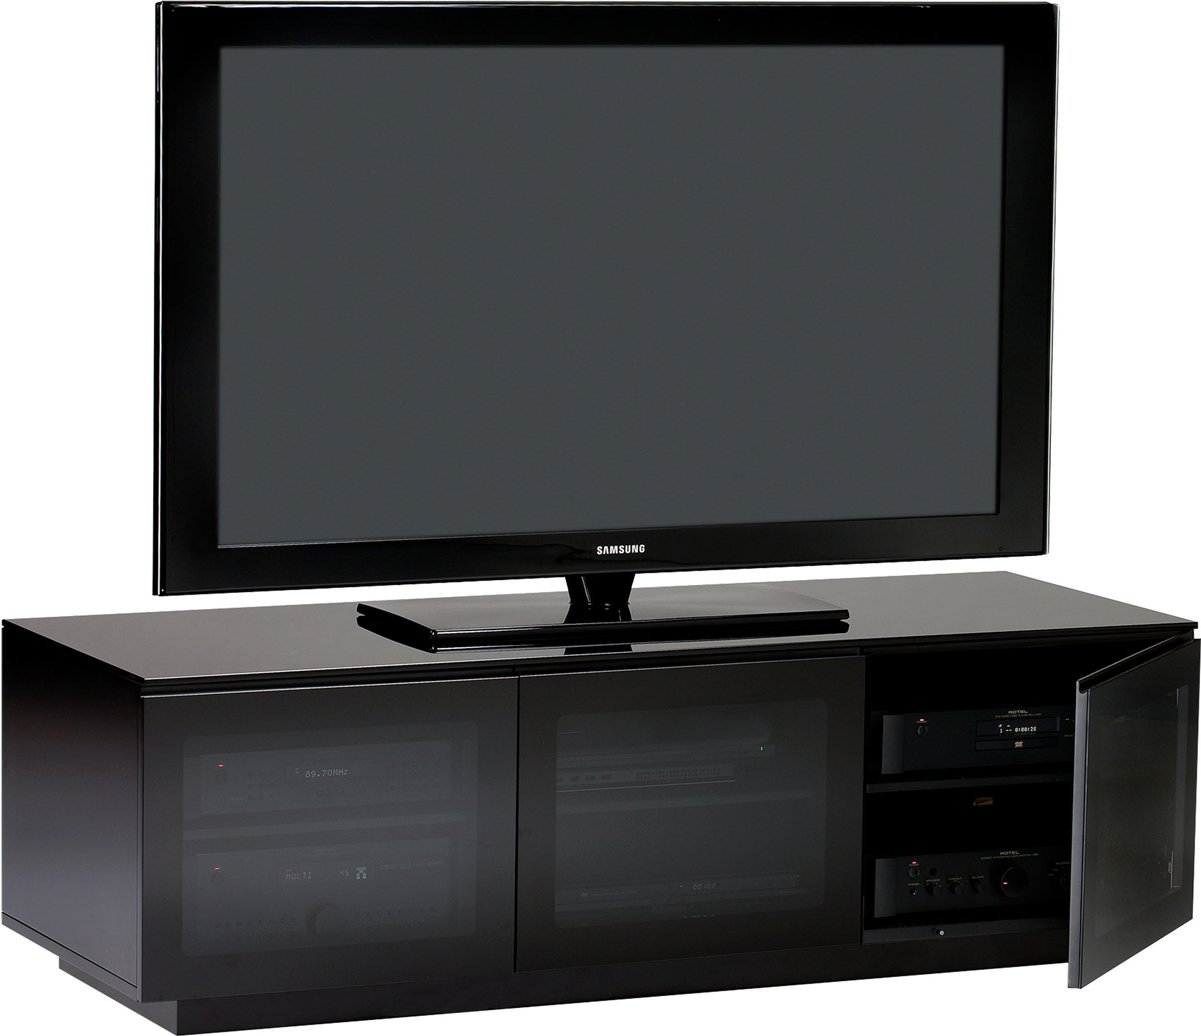 Mirage Tv Stand In Black Main Image Alternative